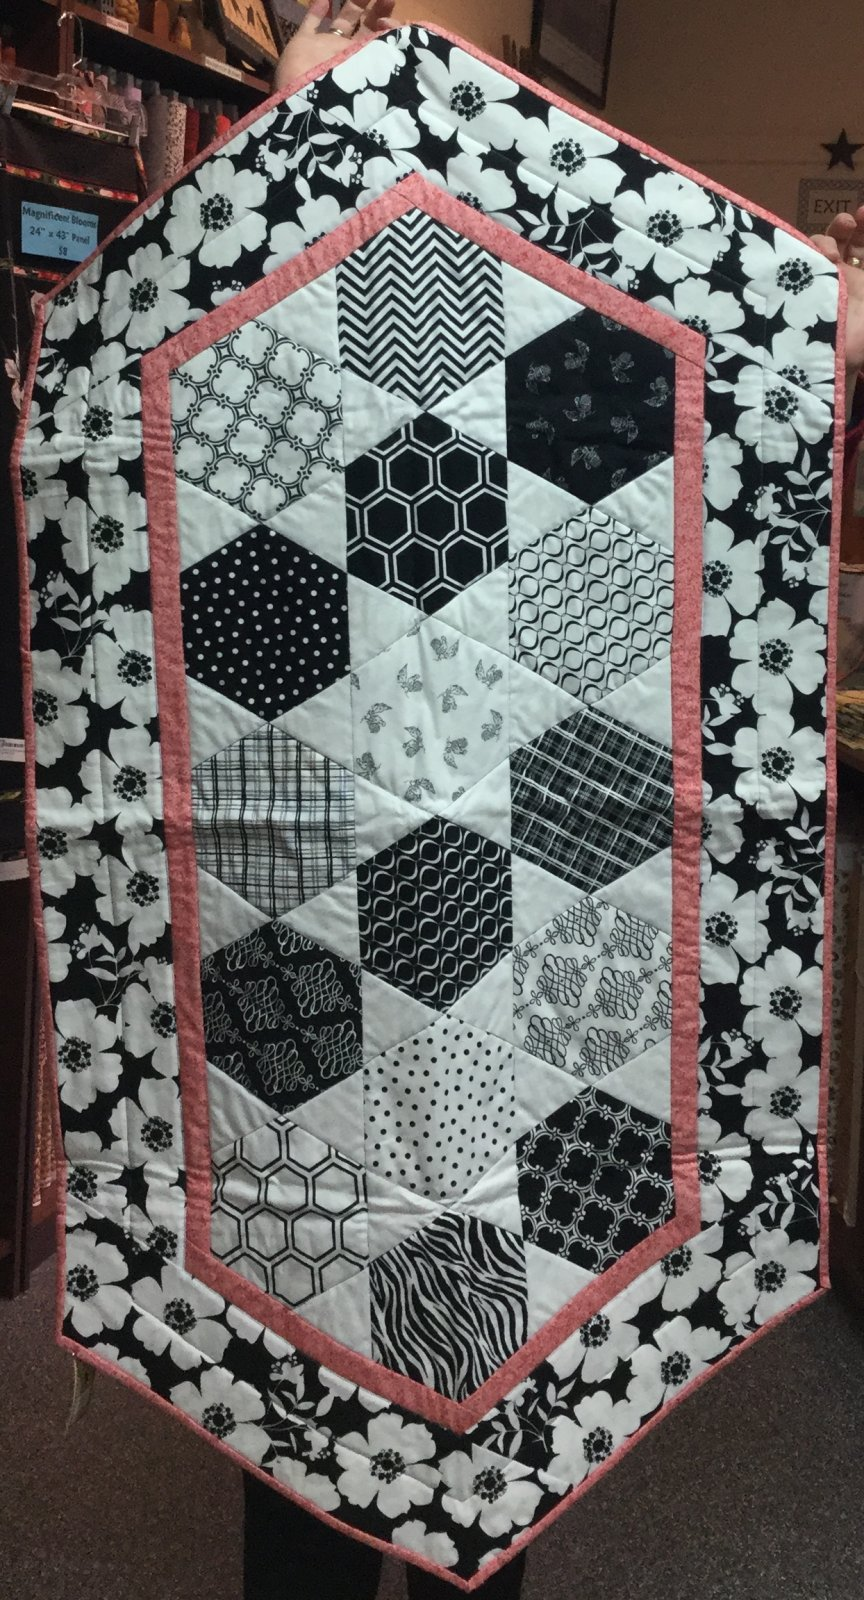 Opposites Attract Table Runner (29 x 55)